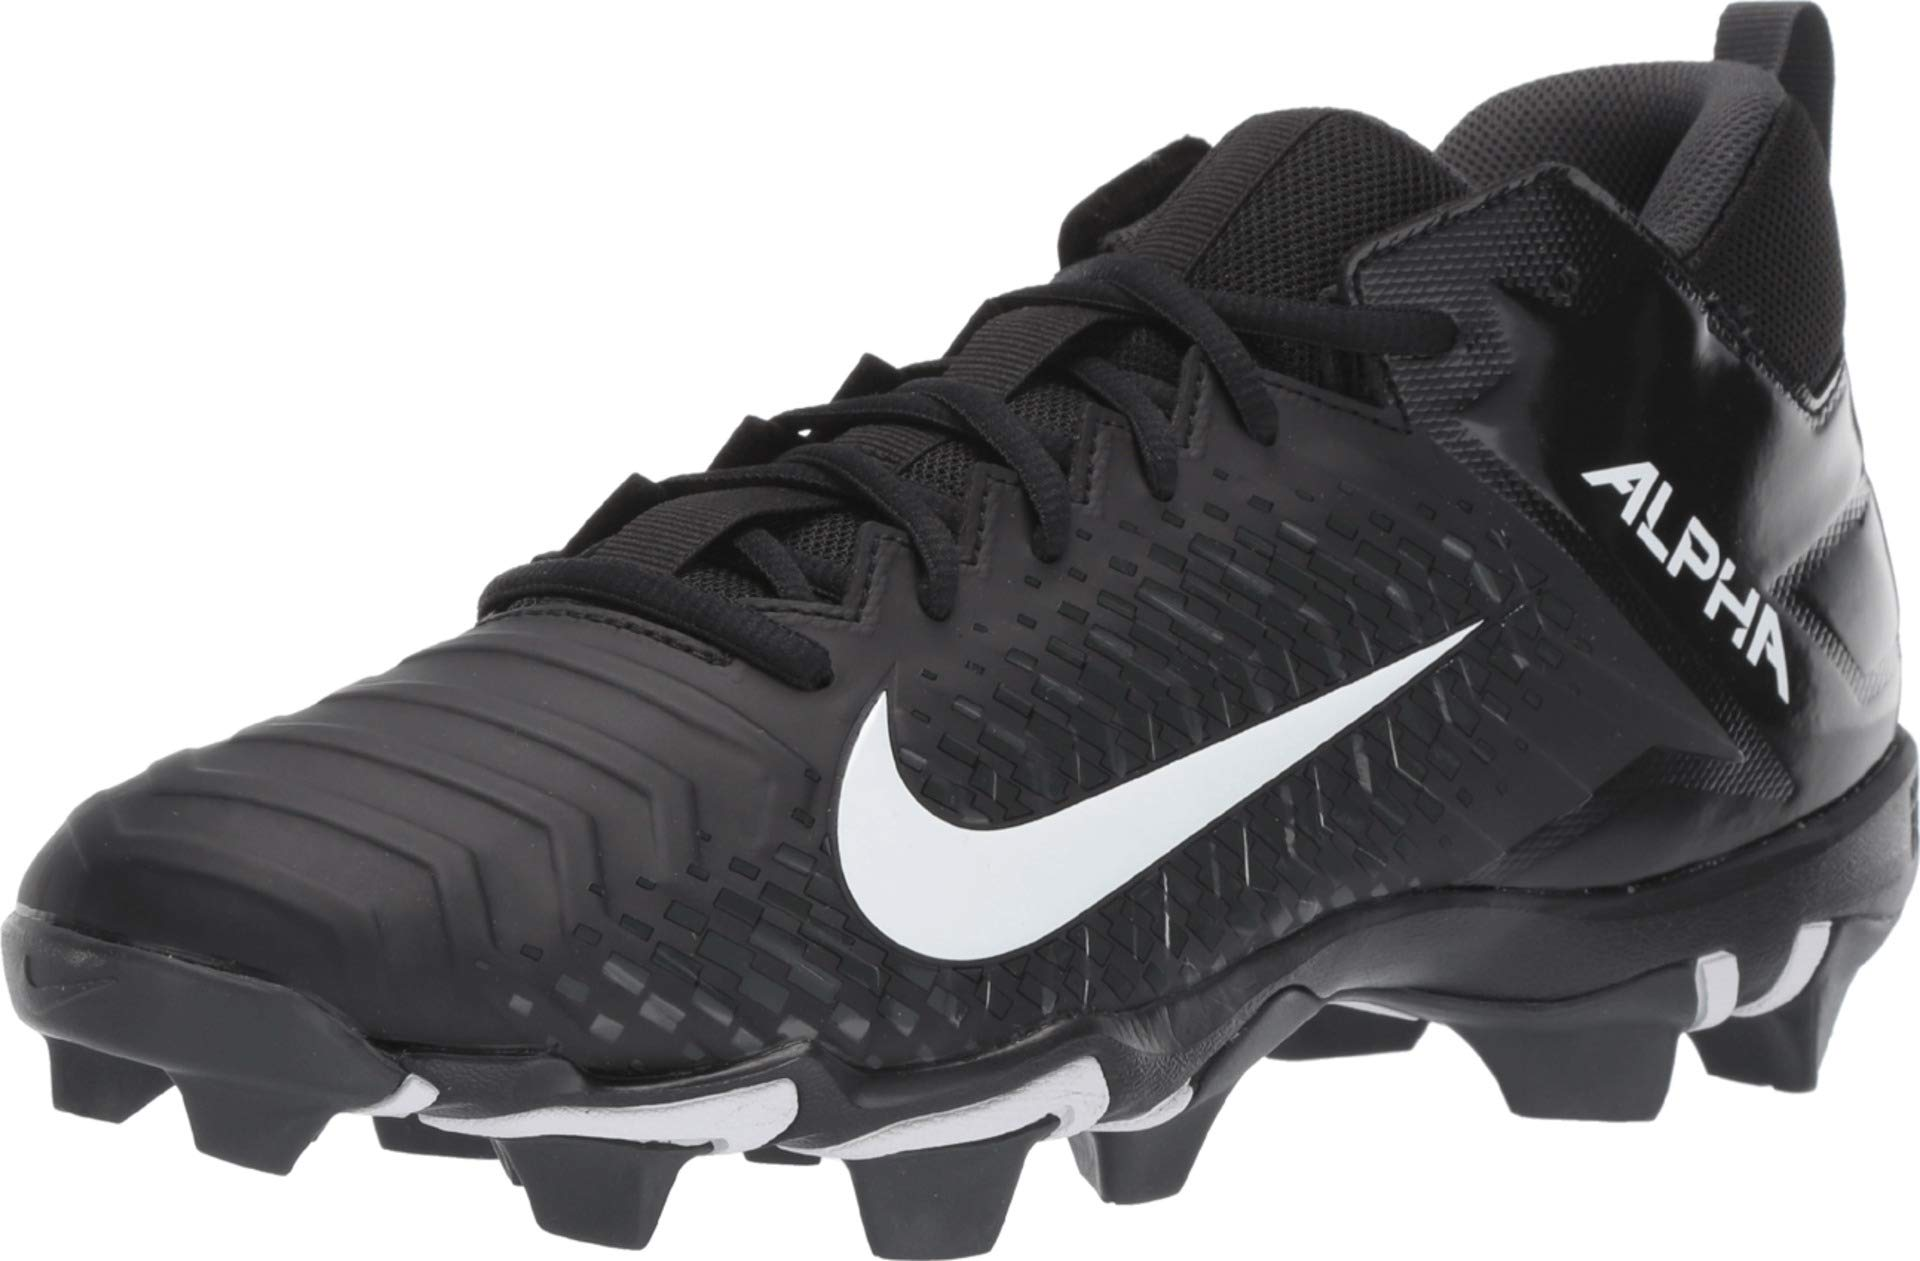 Nike Men's Alpha Menace 2 Shark Football Cleat Black/White/Anthracite Size 10.5 M US by Nike